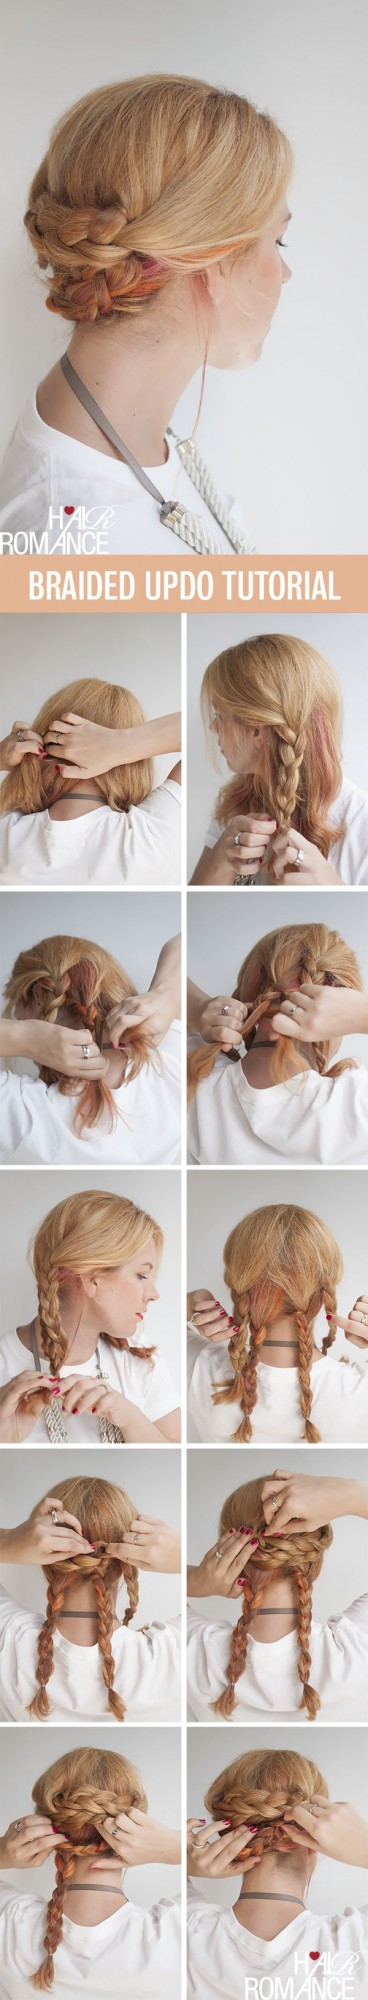 20 Cute And Easy Hairstyle Ideas Tutorials